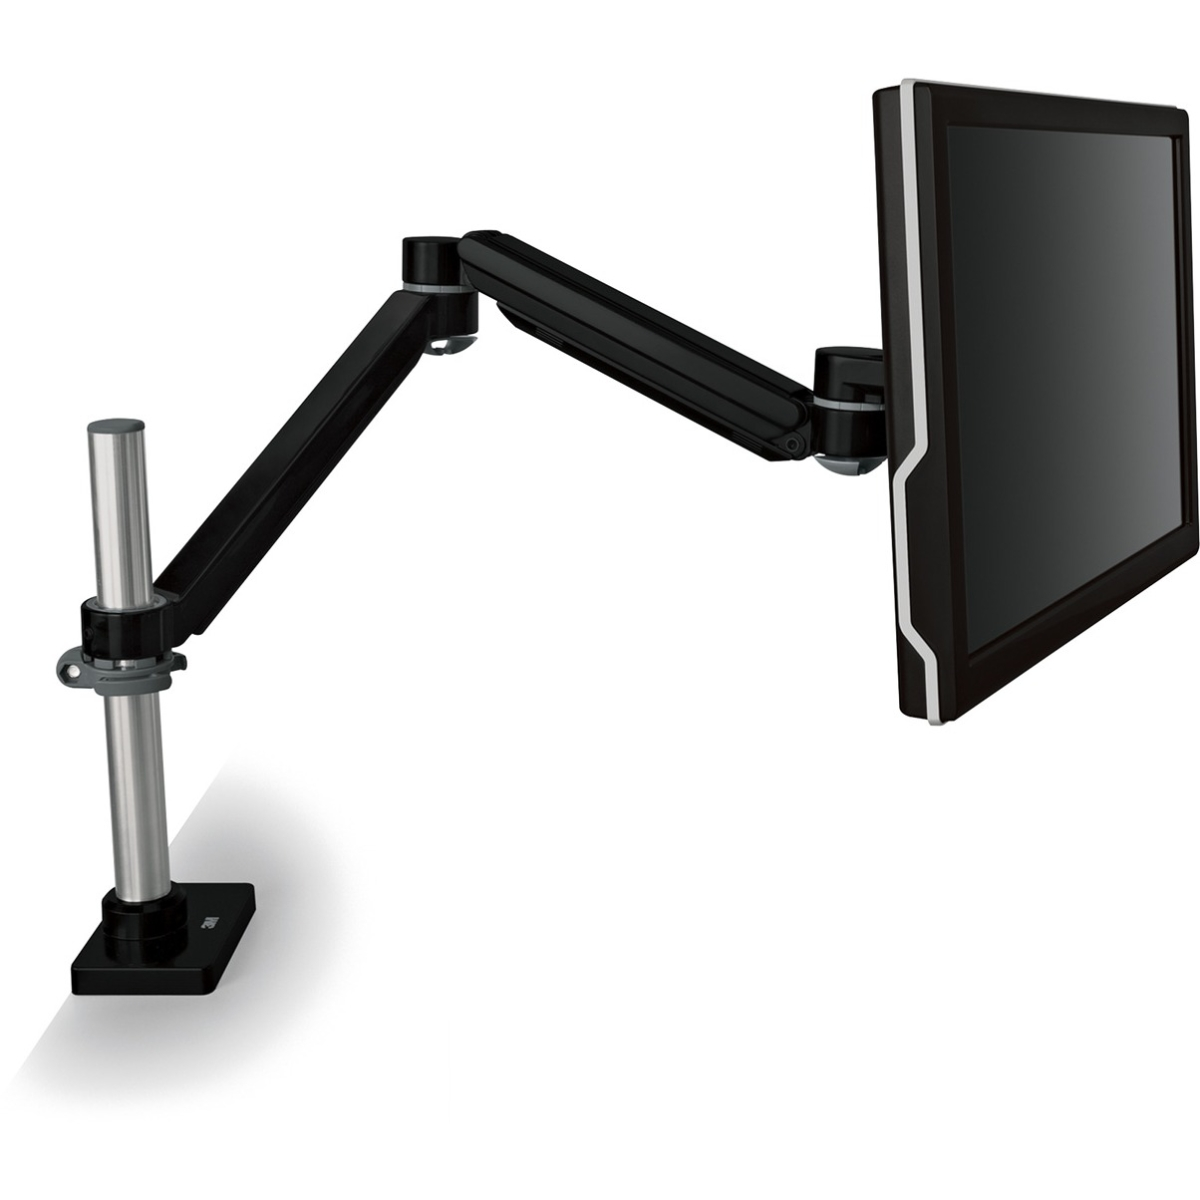 Mounting Arm for Flat Panel Display - 20 lb Load Capacity - Black